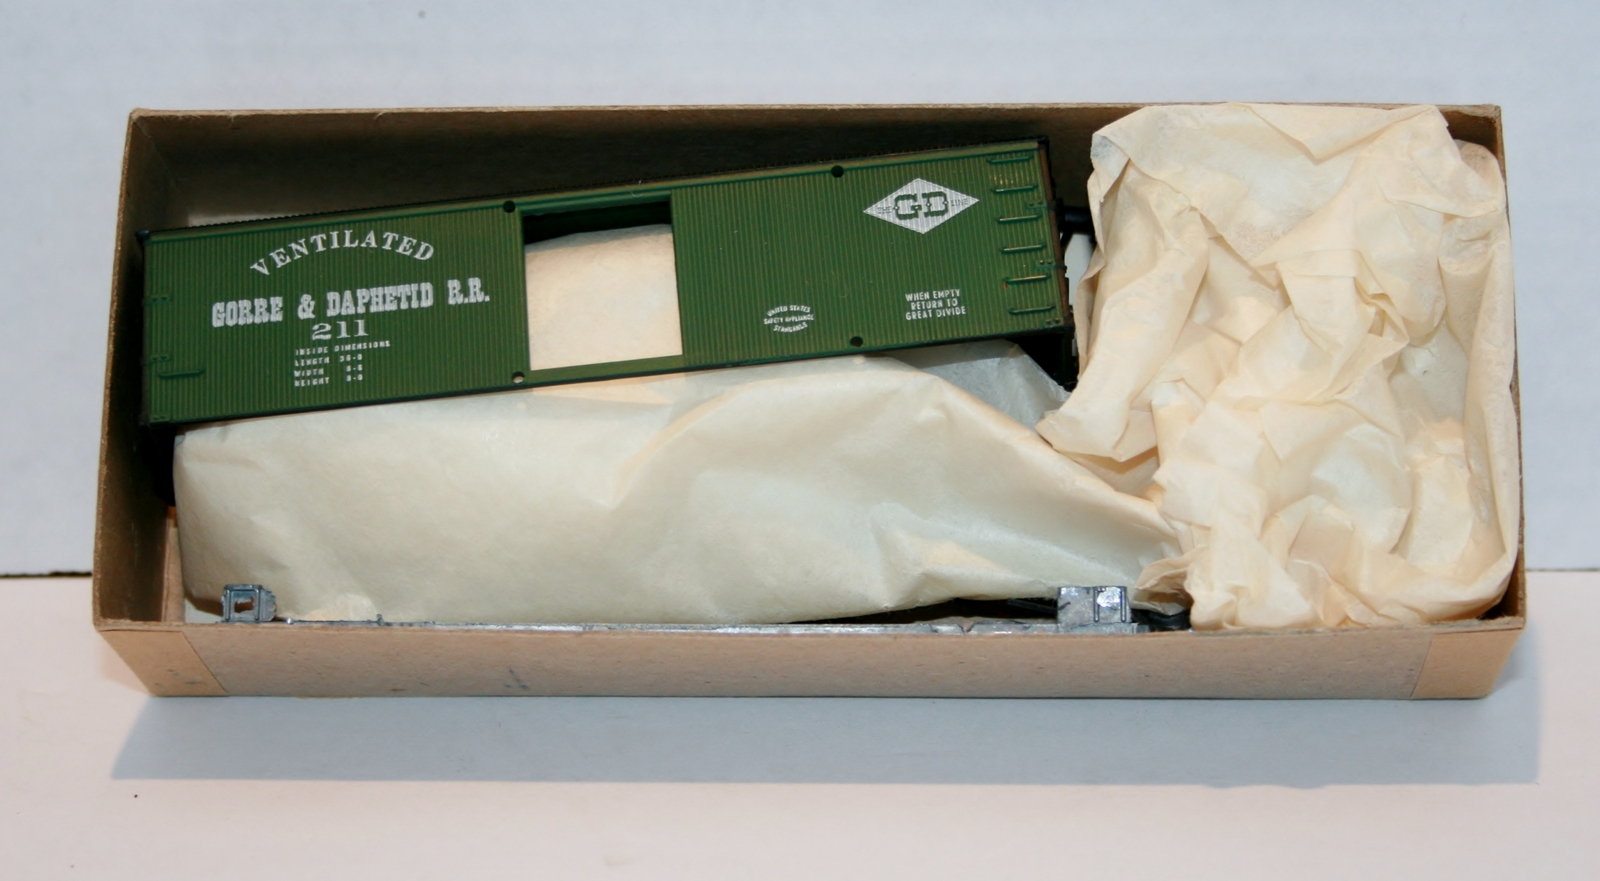 MDC, 36' Ventilated Box Car, Gorre & Daphetid R.R. Kit, Green Item 1008 NIB, 211